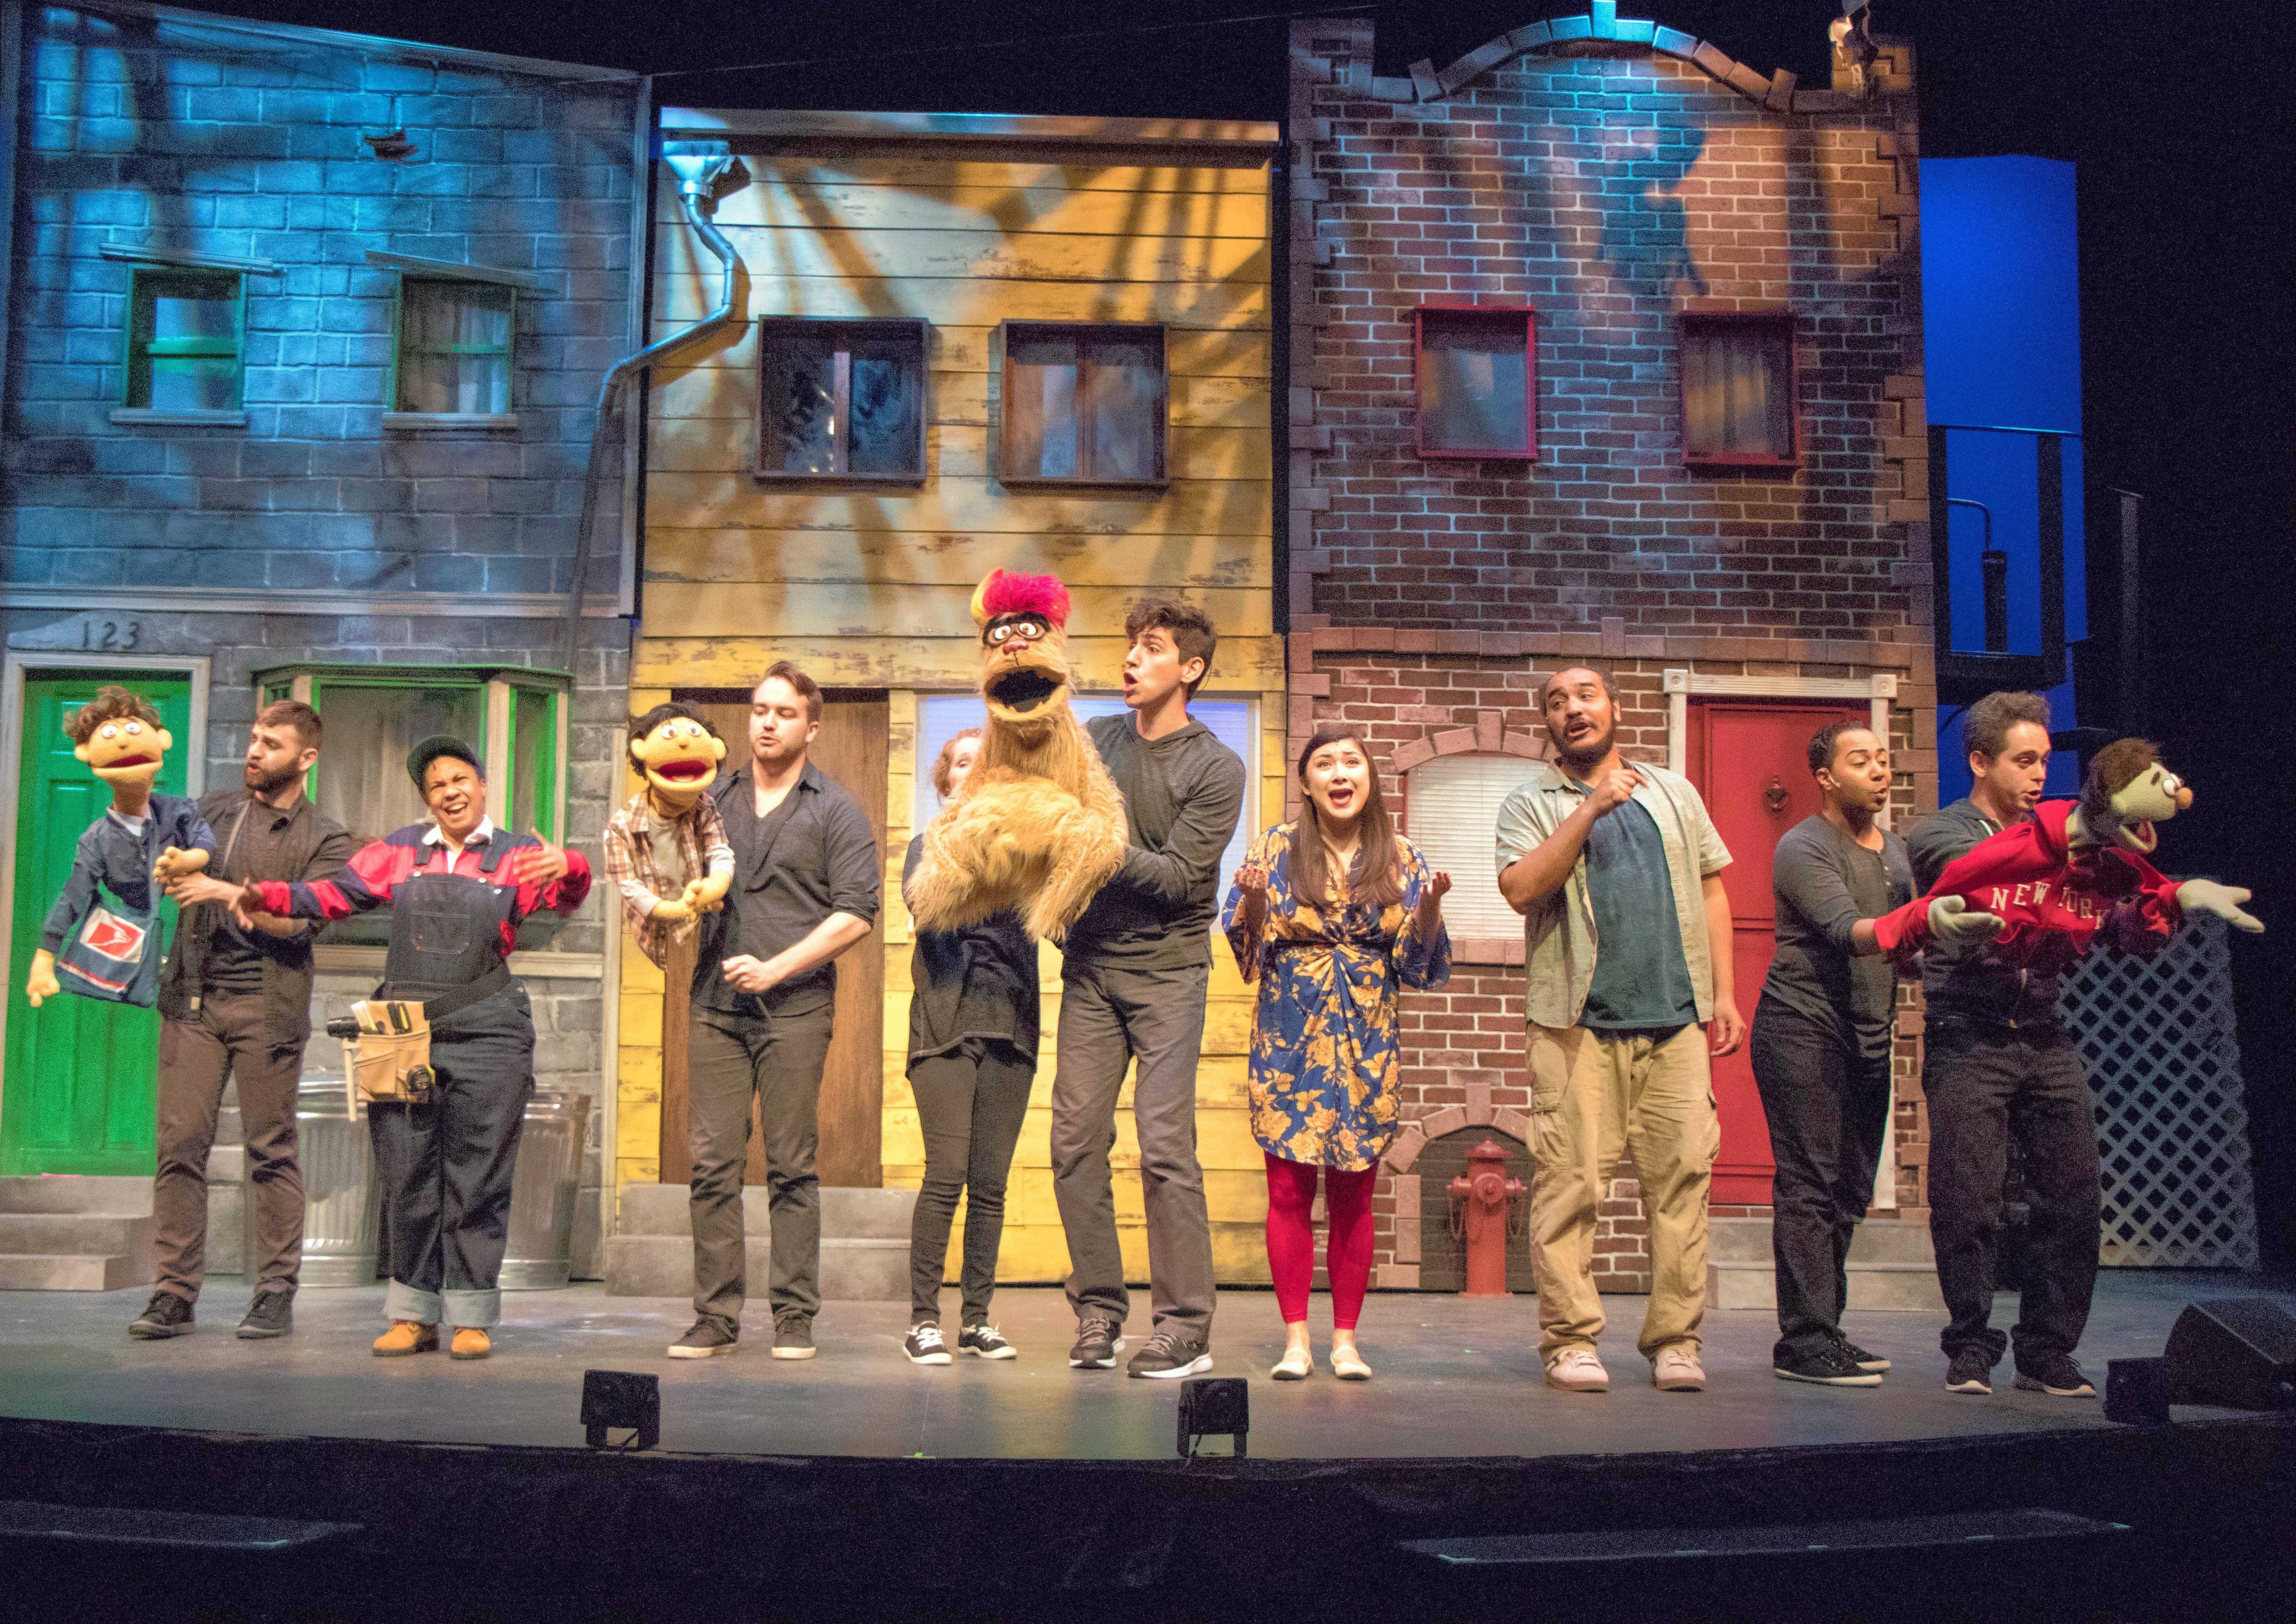 """Avenue Q,"" chronicling the personal, professional and financial crises affecting New York City 20-somethings, runs through June 30 at the Metropolis Performing Arts Centre in Arlington Heights."